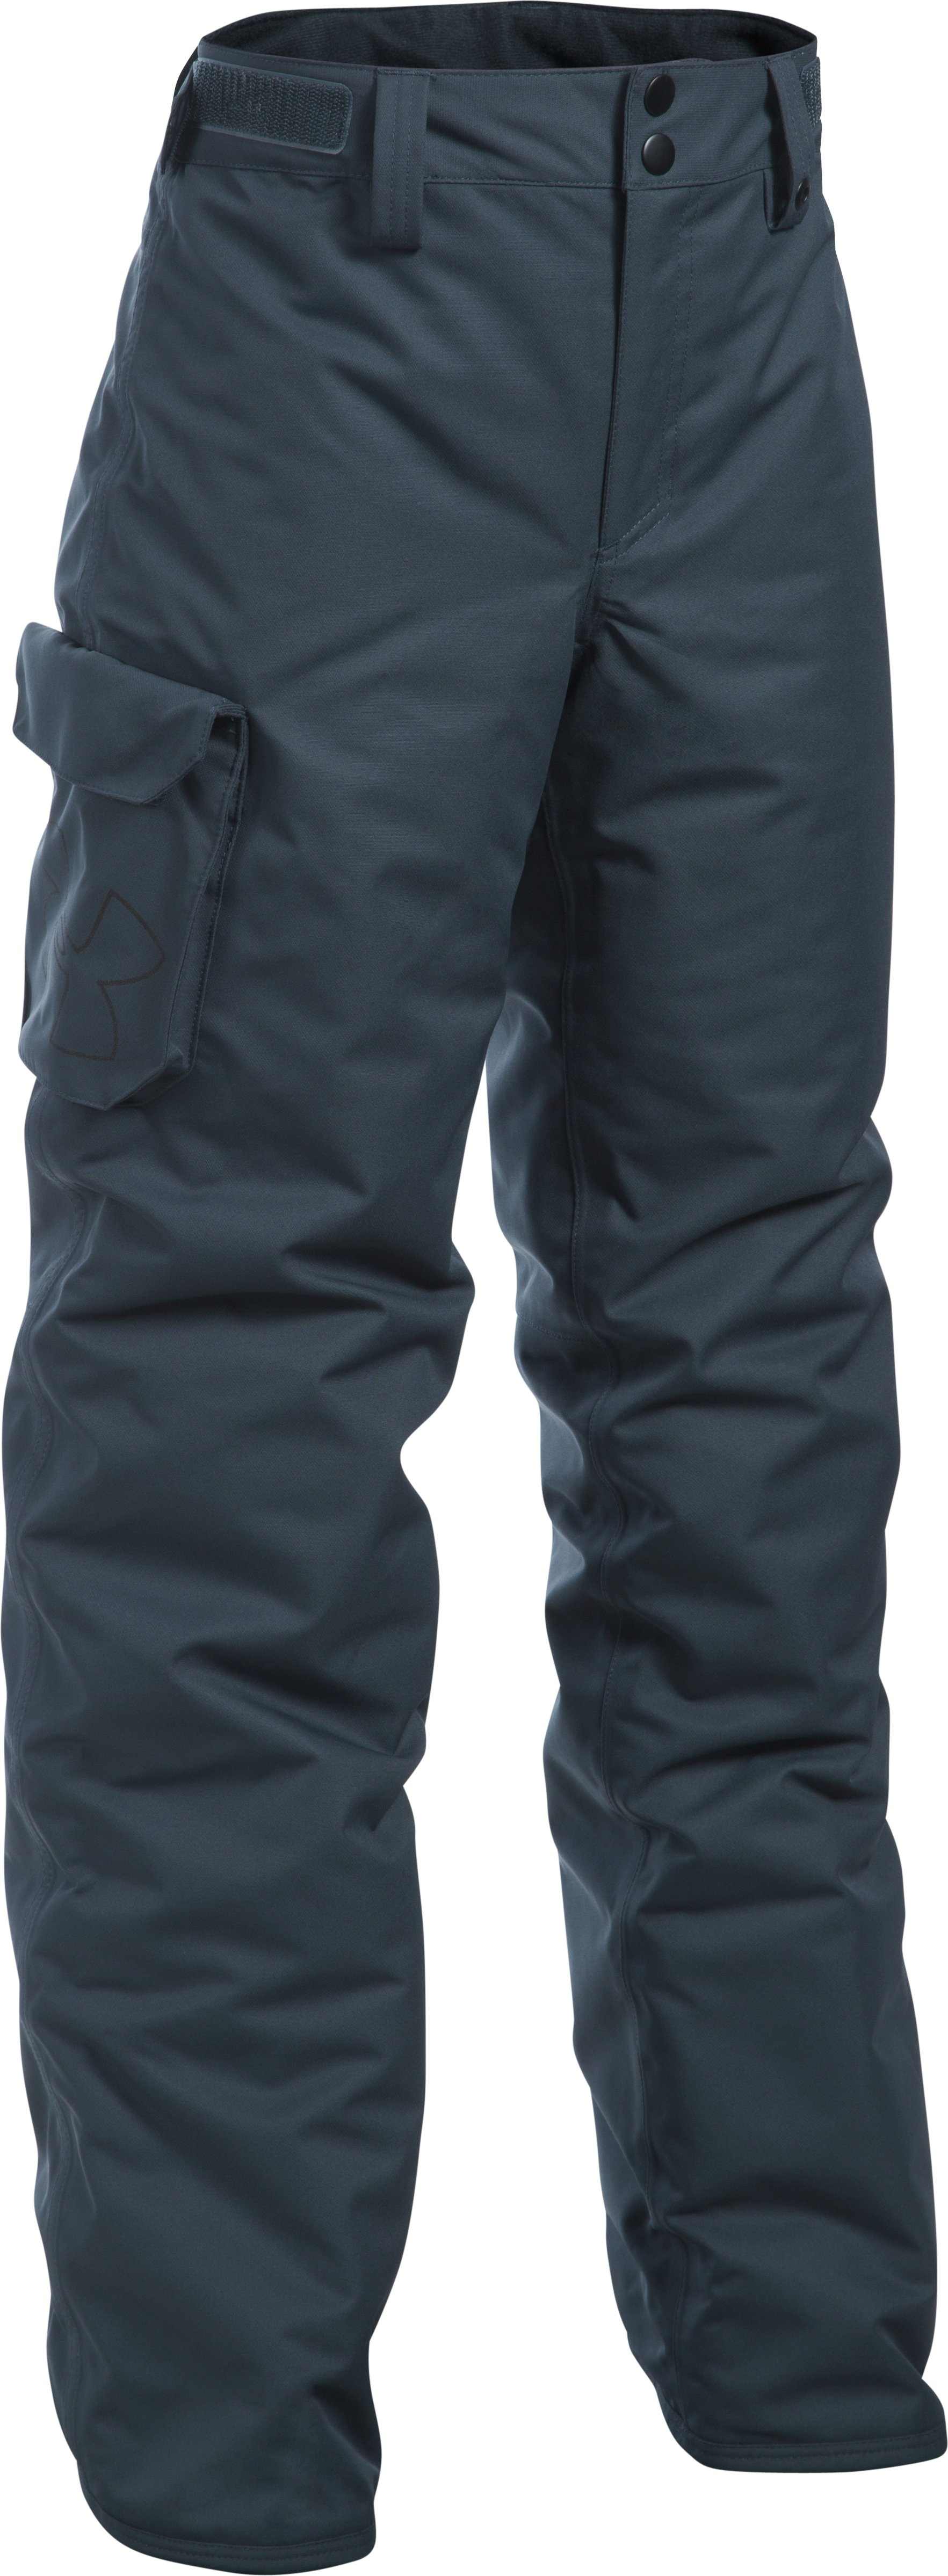 Boys' UA Storm Chutes Insulated Pants, STEALTH GRAY